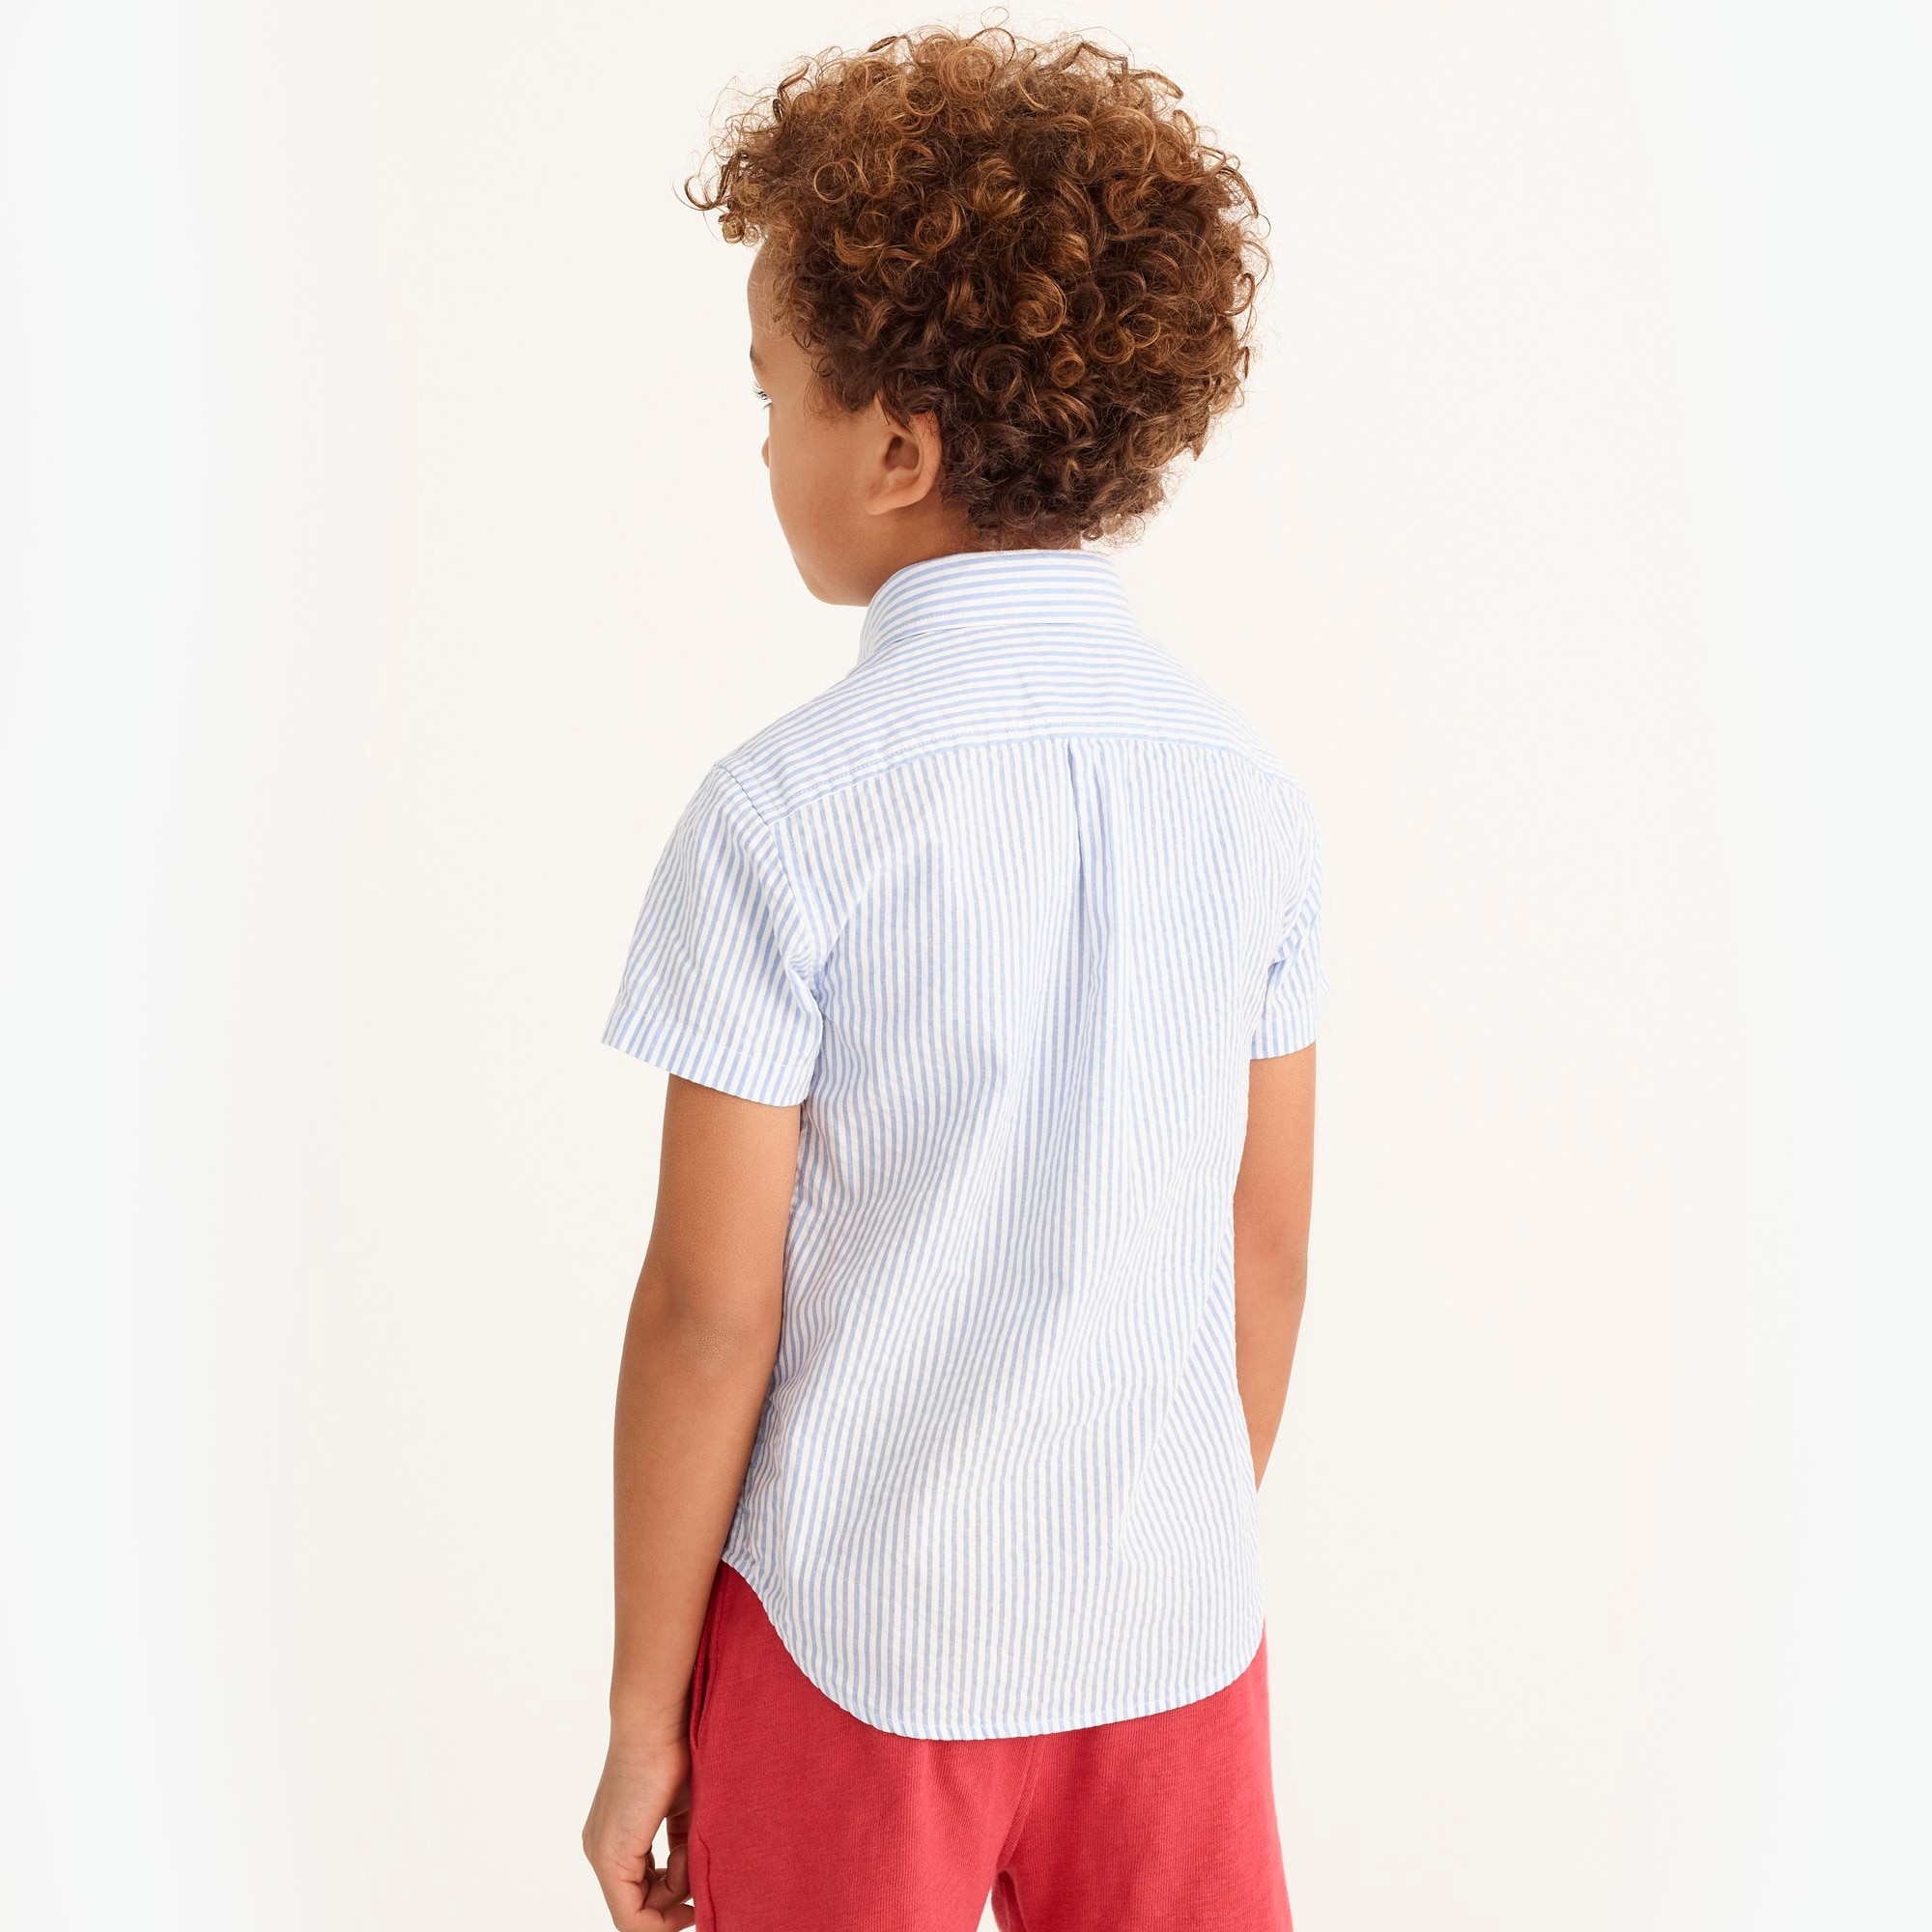 Image 2 for Boys' short-sleeve shirt in seersucker